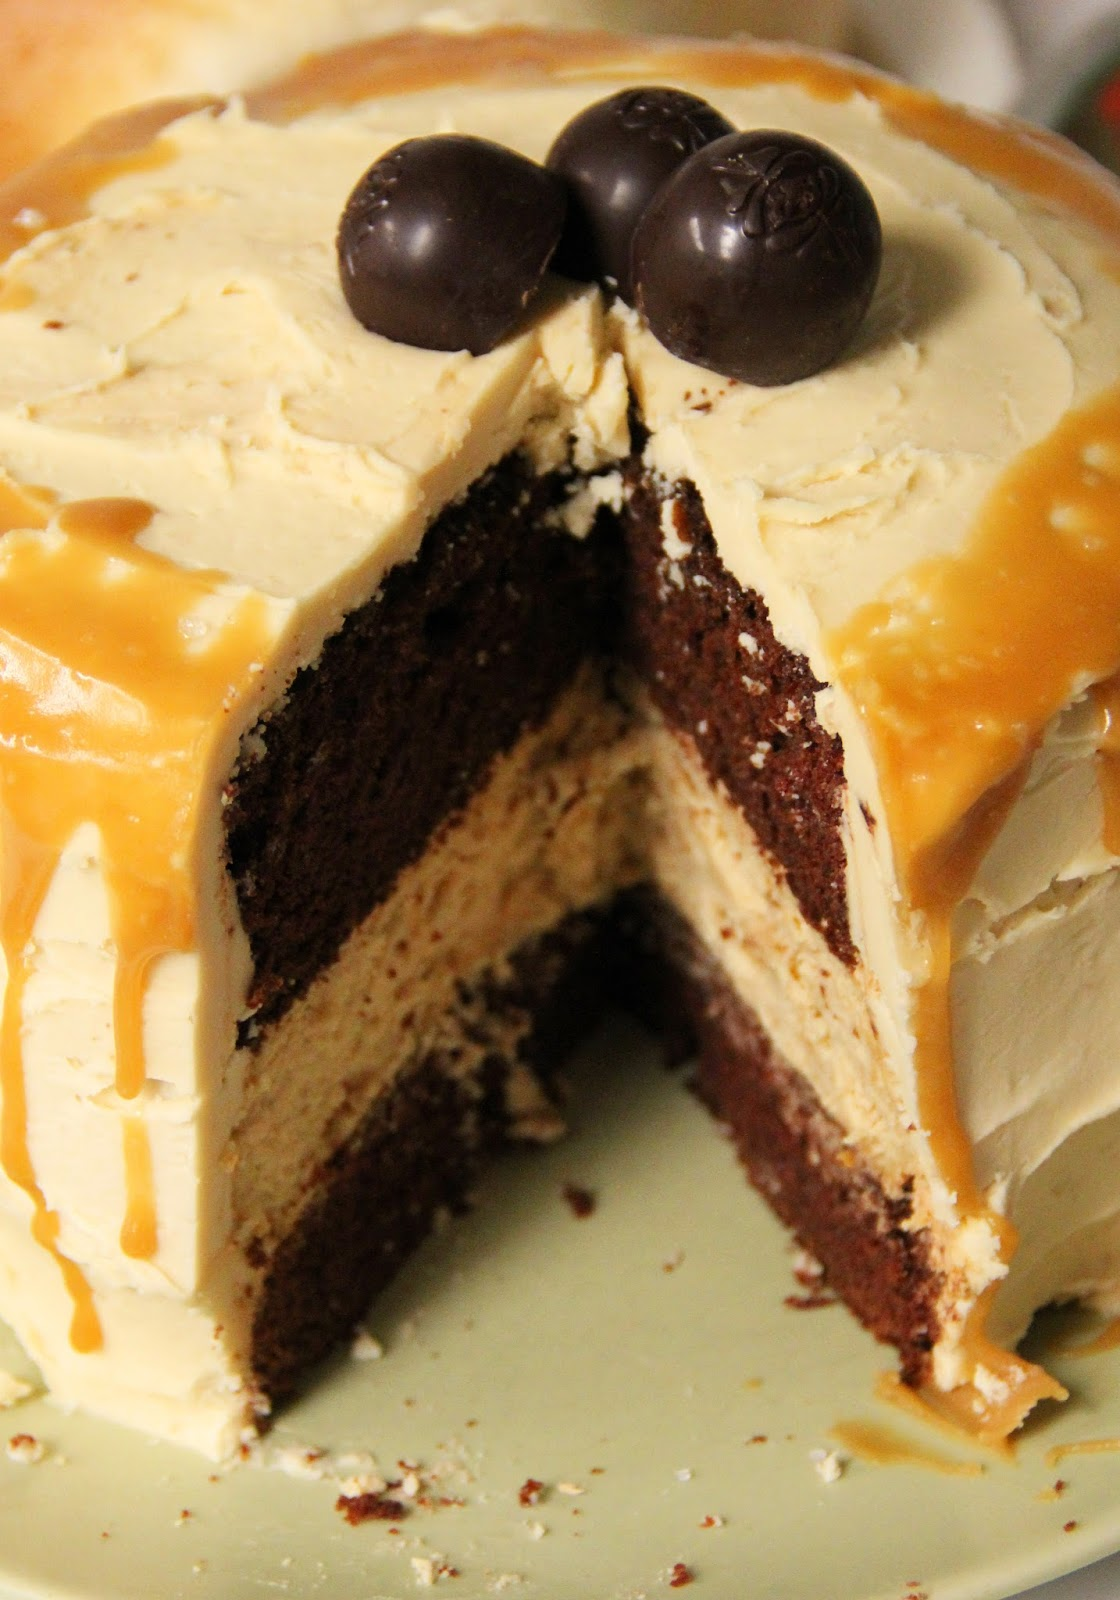 ... Caramel Macchiato Cheesecake With Salted Caramel Buttercream (re-post